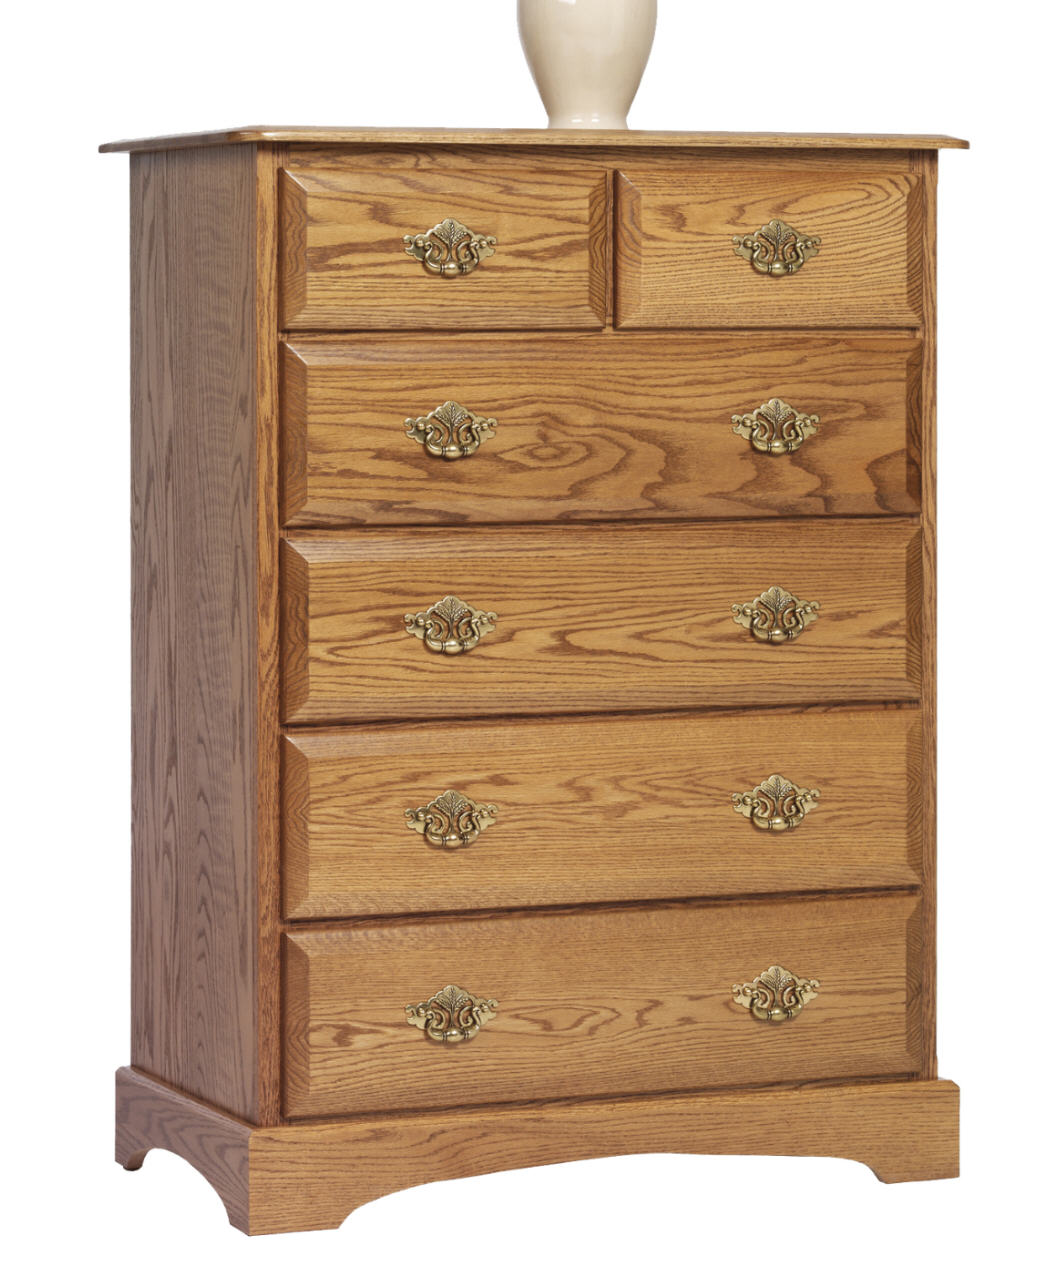 Sierra Classic Chest of Drawers